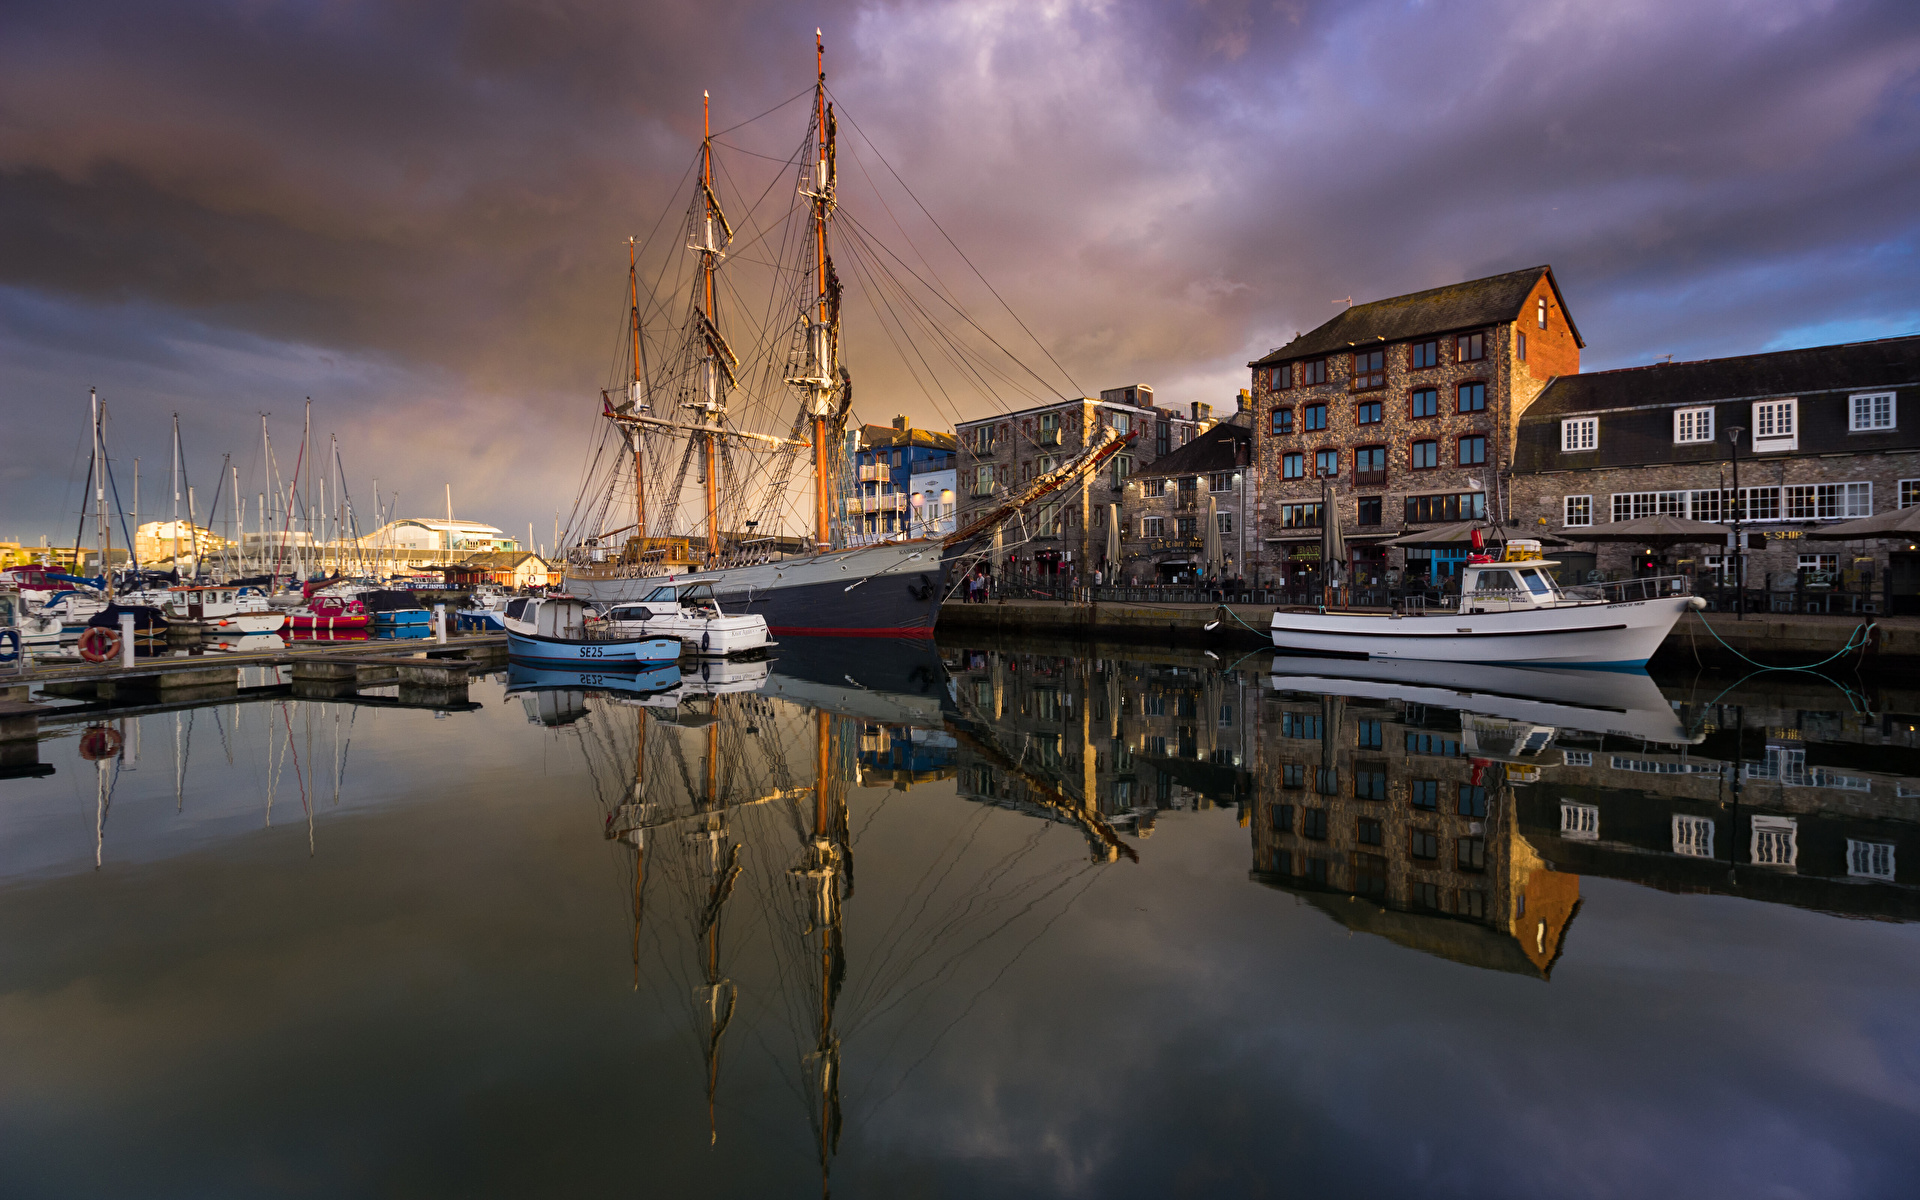 Photo England Plymouth ship People Pier Motorboat Waterfront Cities Building 1920x1200 Ships Berth Marinas speedboat powerboat Houses